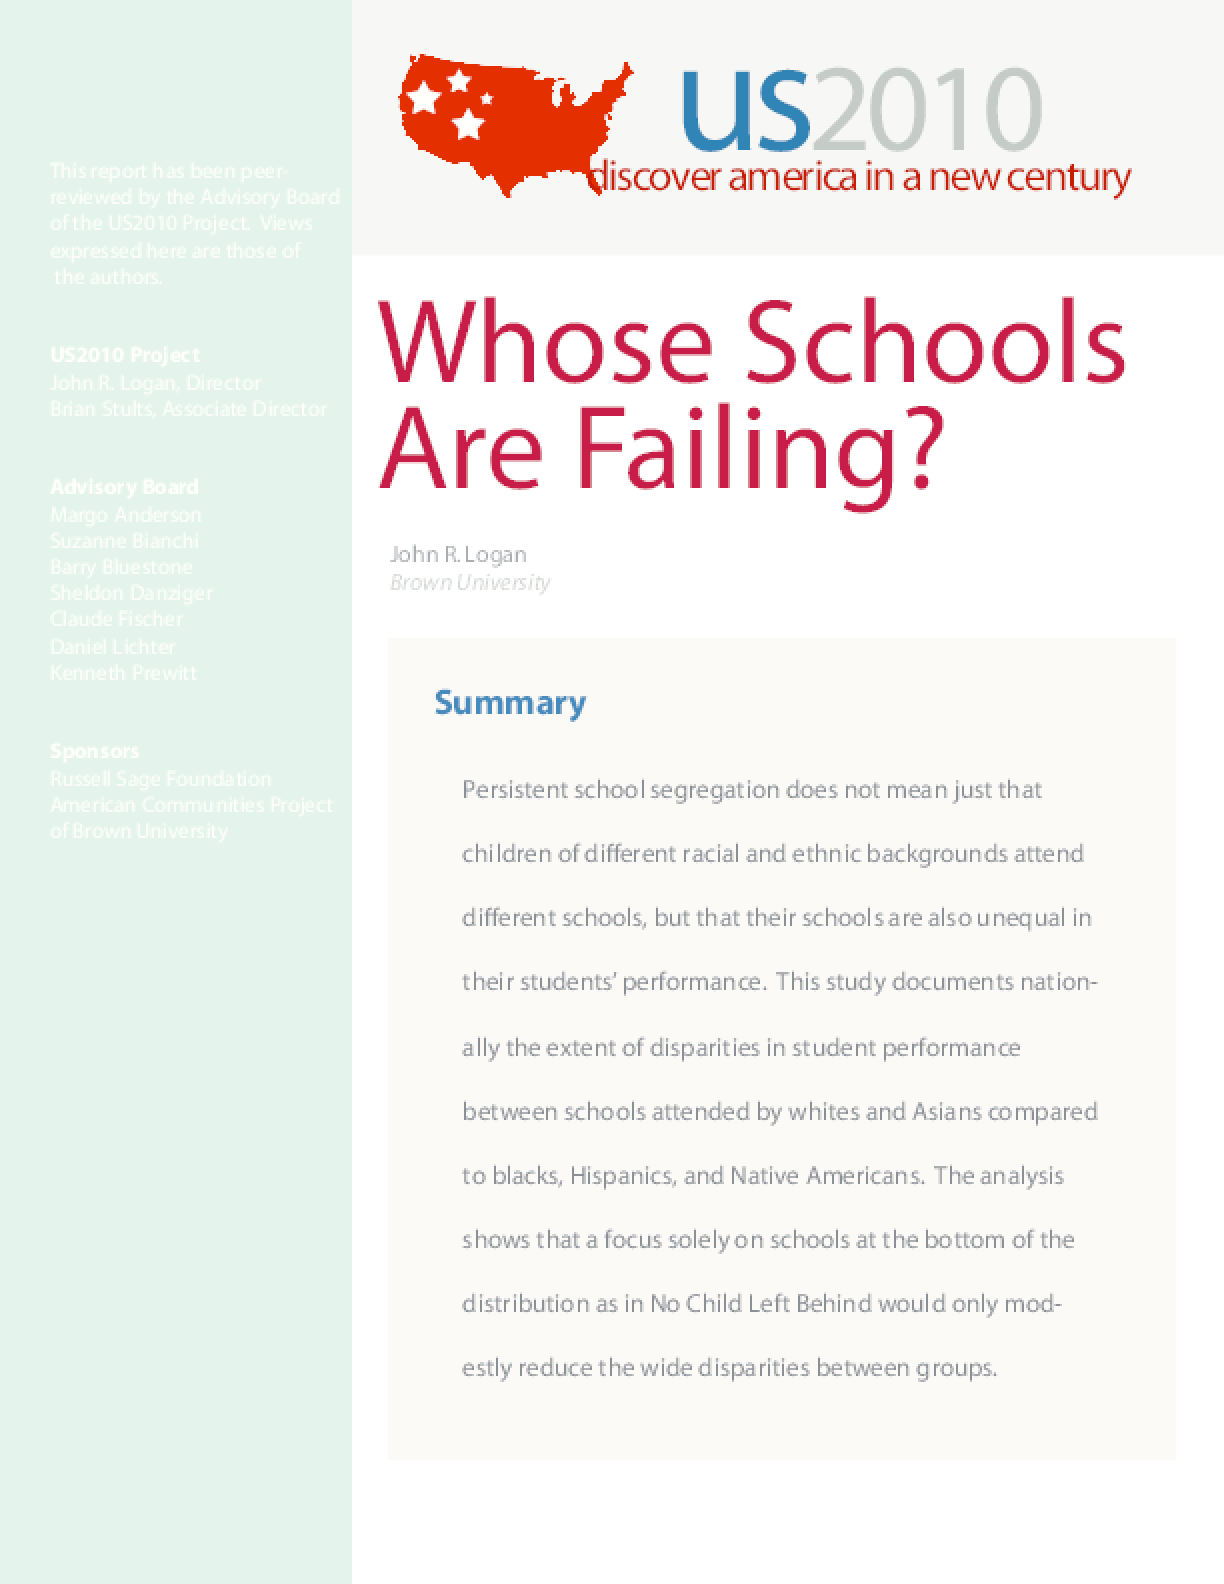 Whose Schools Are Failing?